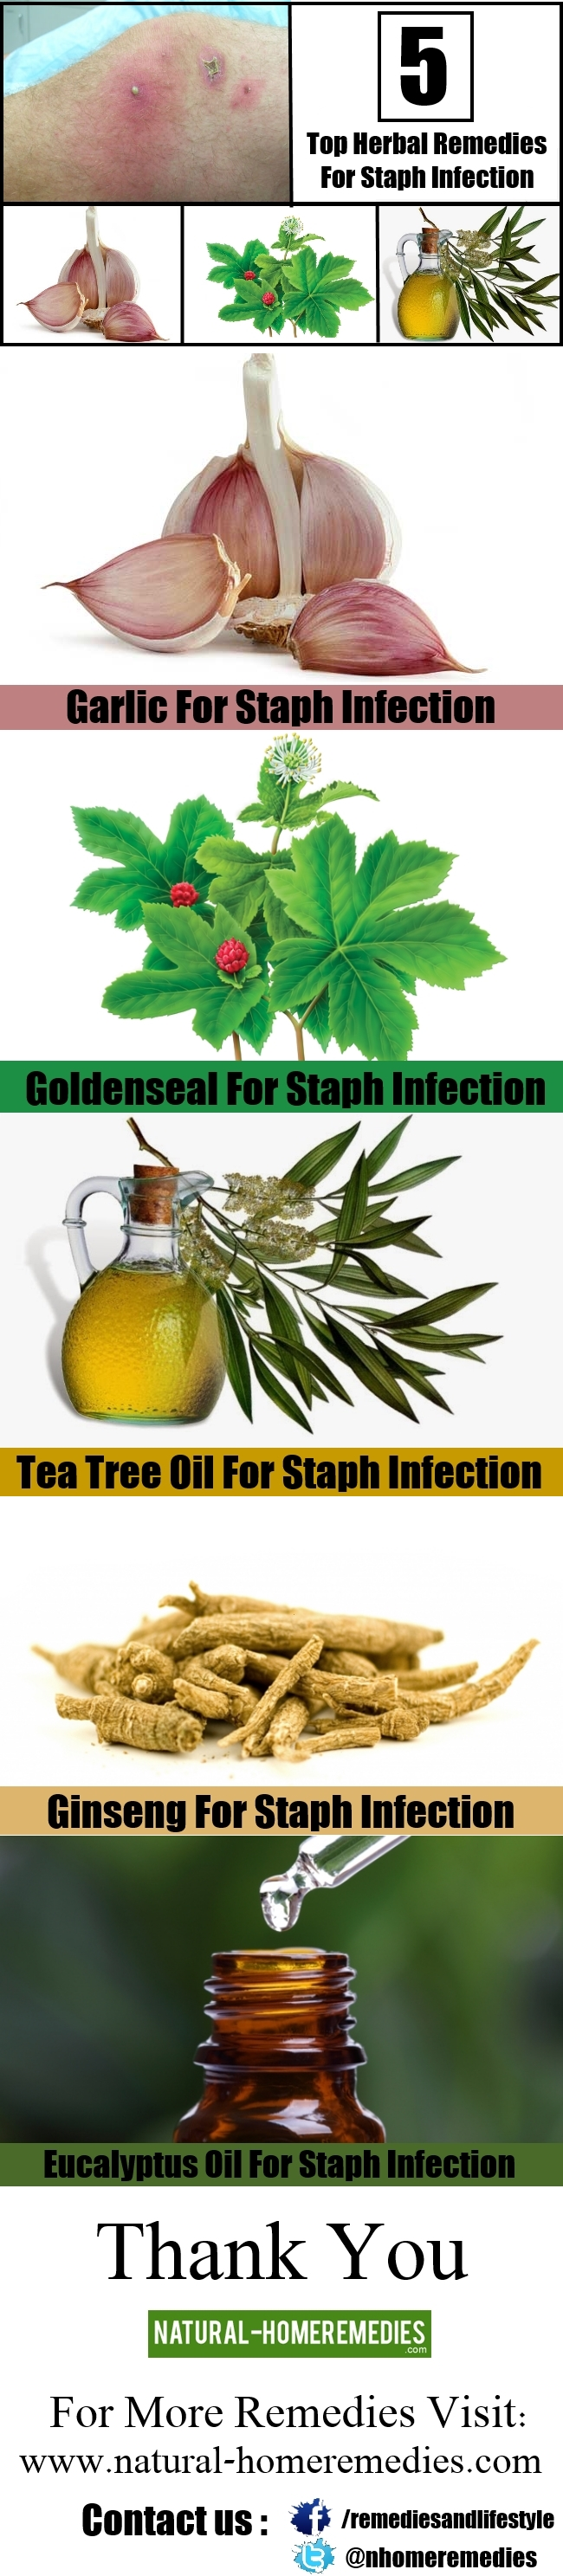 Top 5 Herbal Remedies For Staph Infection